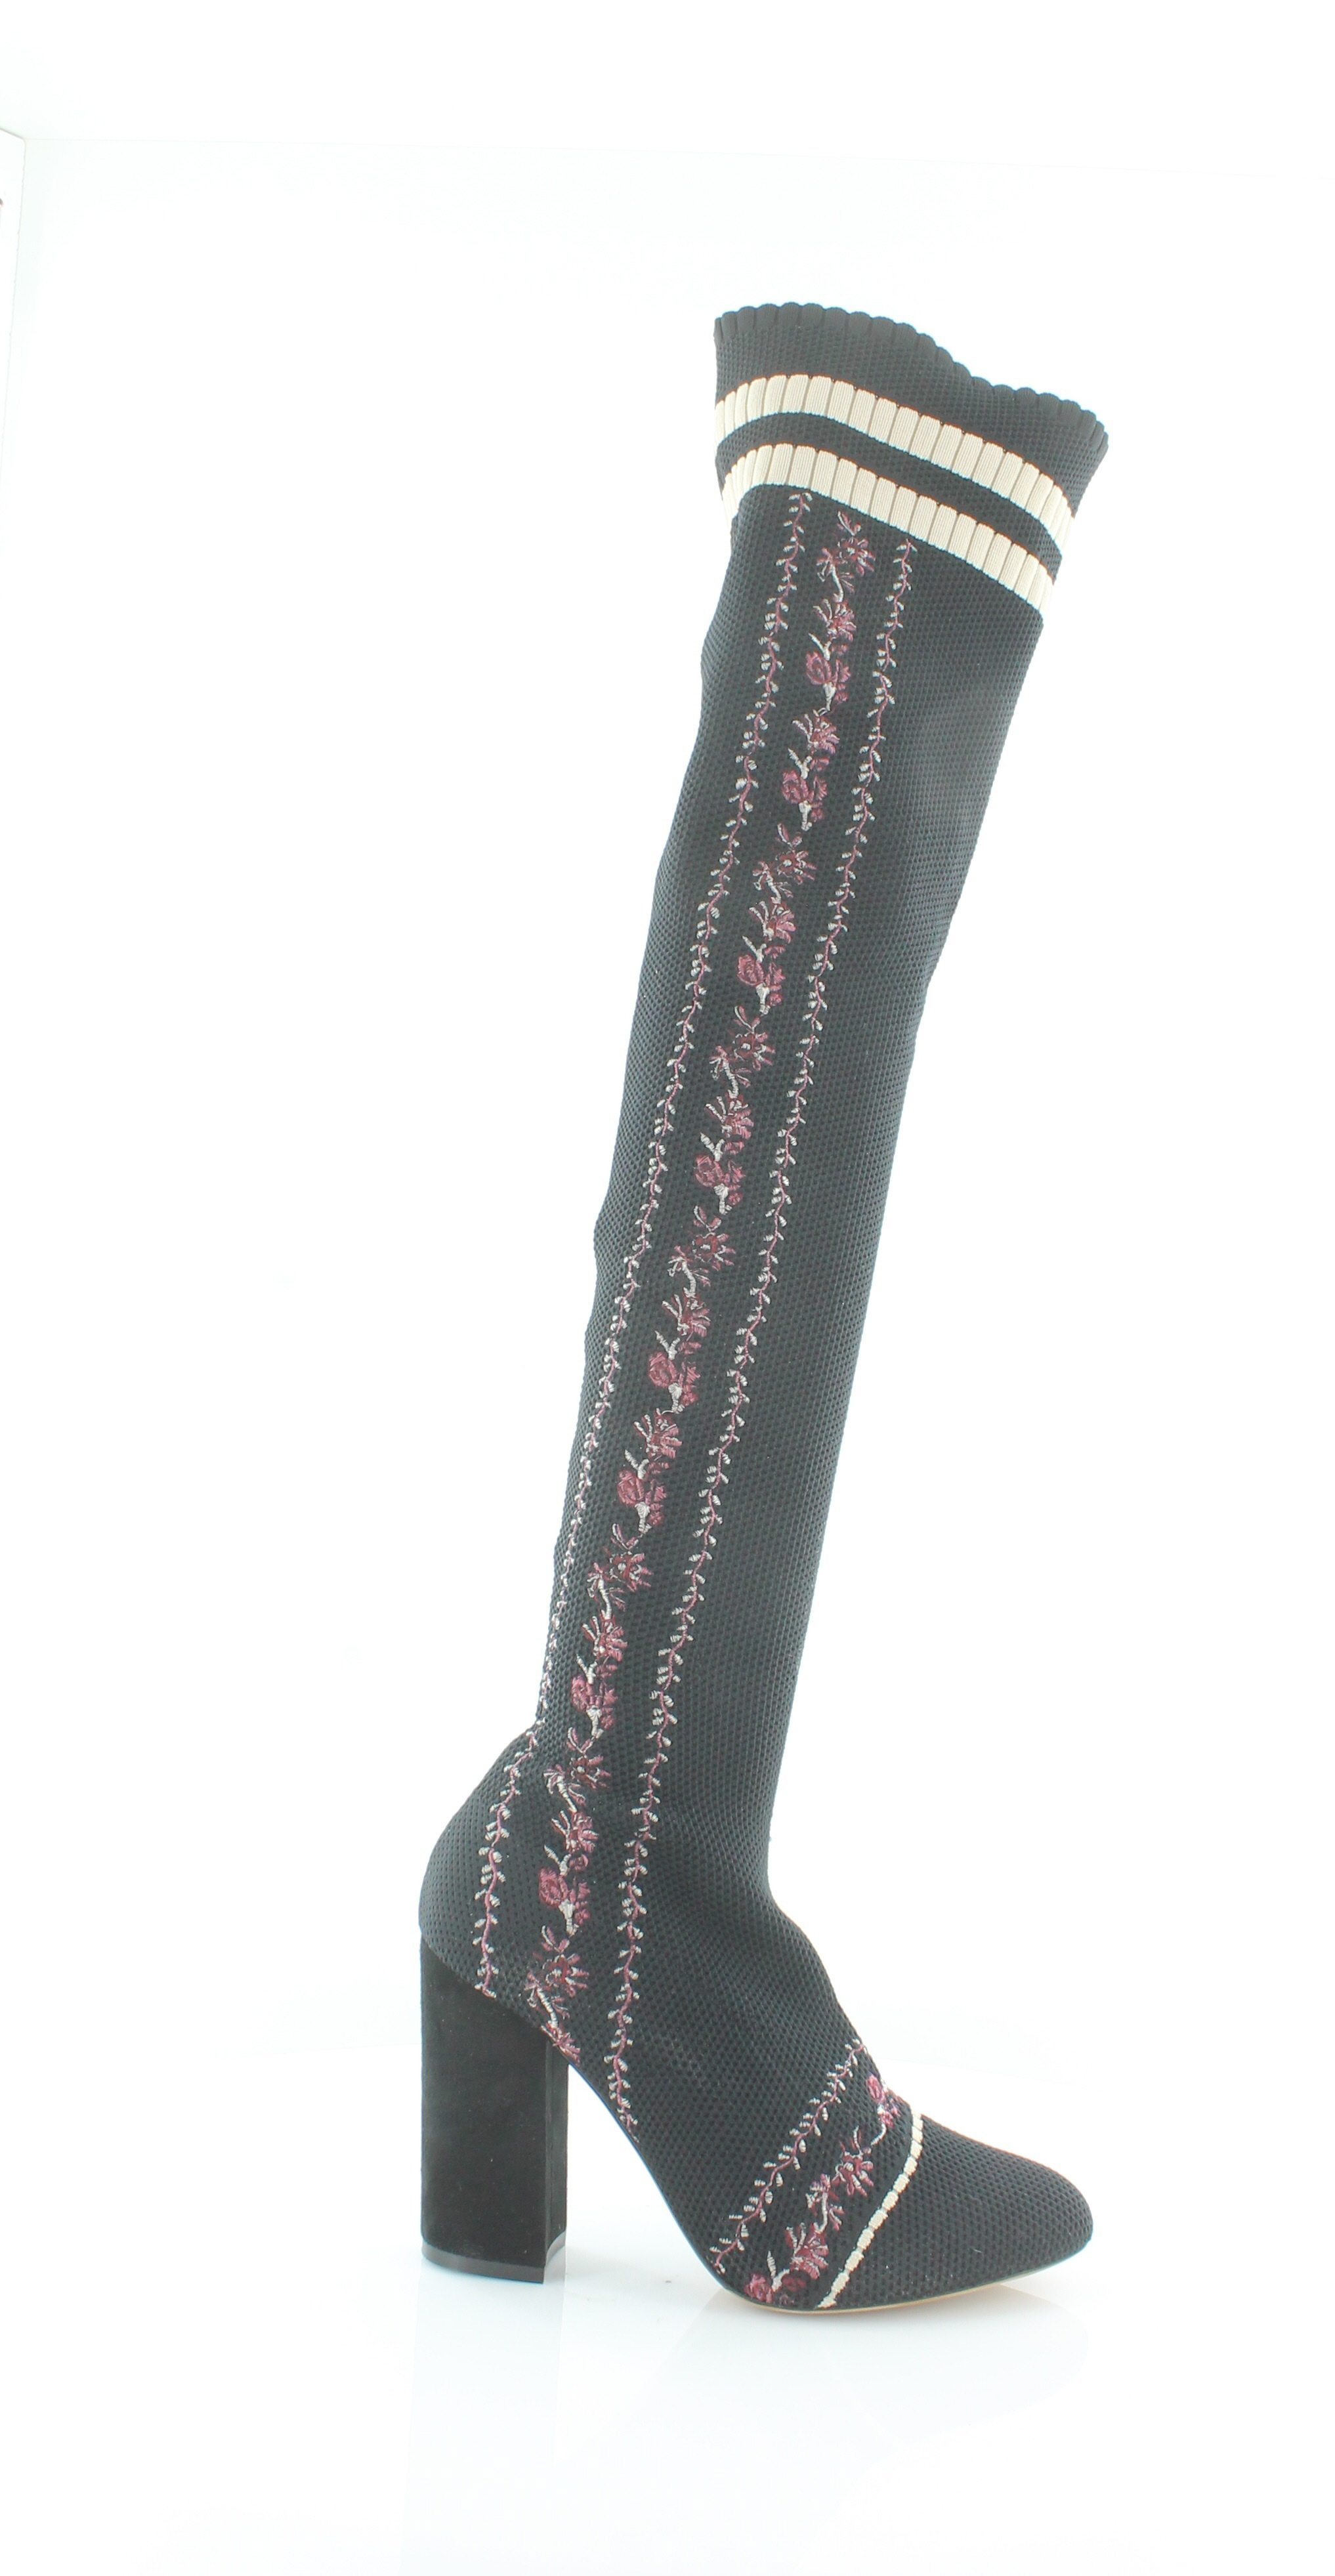 Details about Tabitha Simmons Irina Black Womens Shoes Size 8 M Boots MSRP $1295